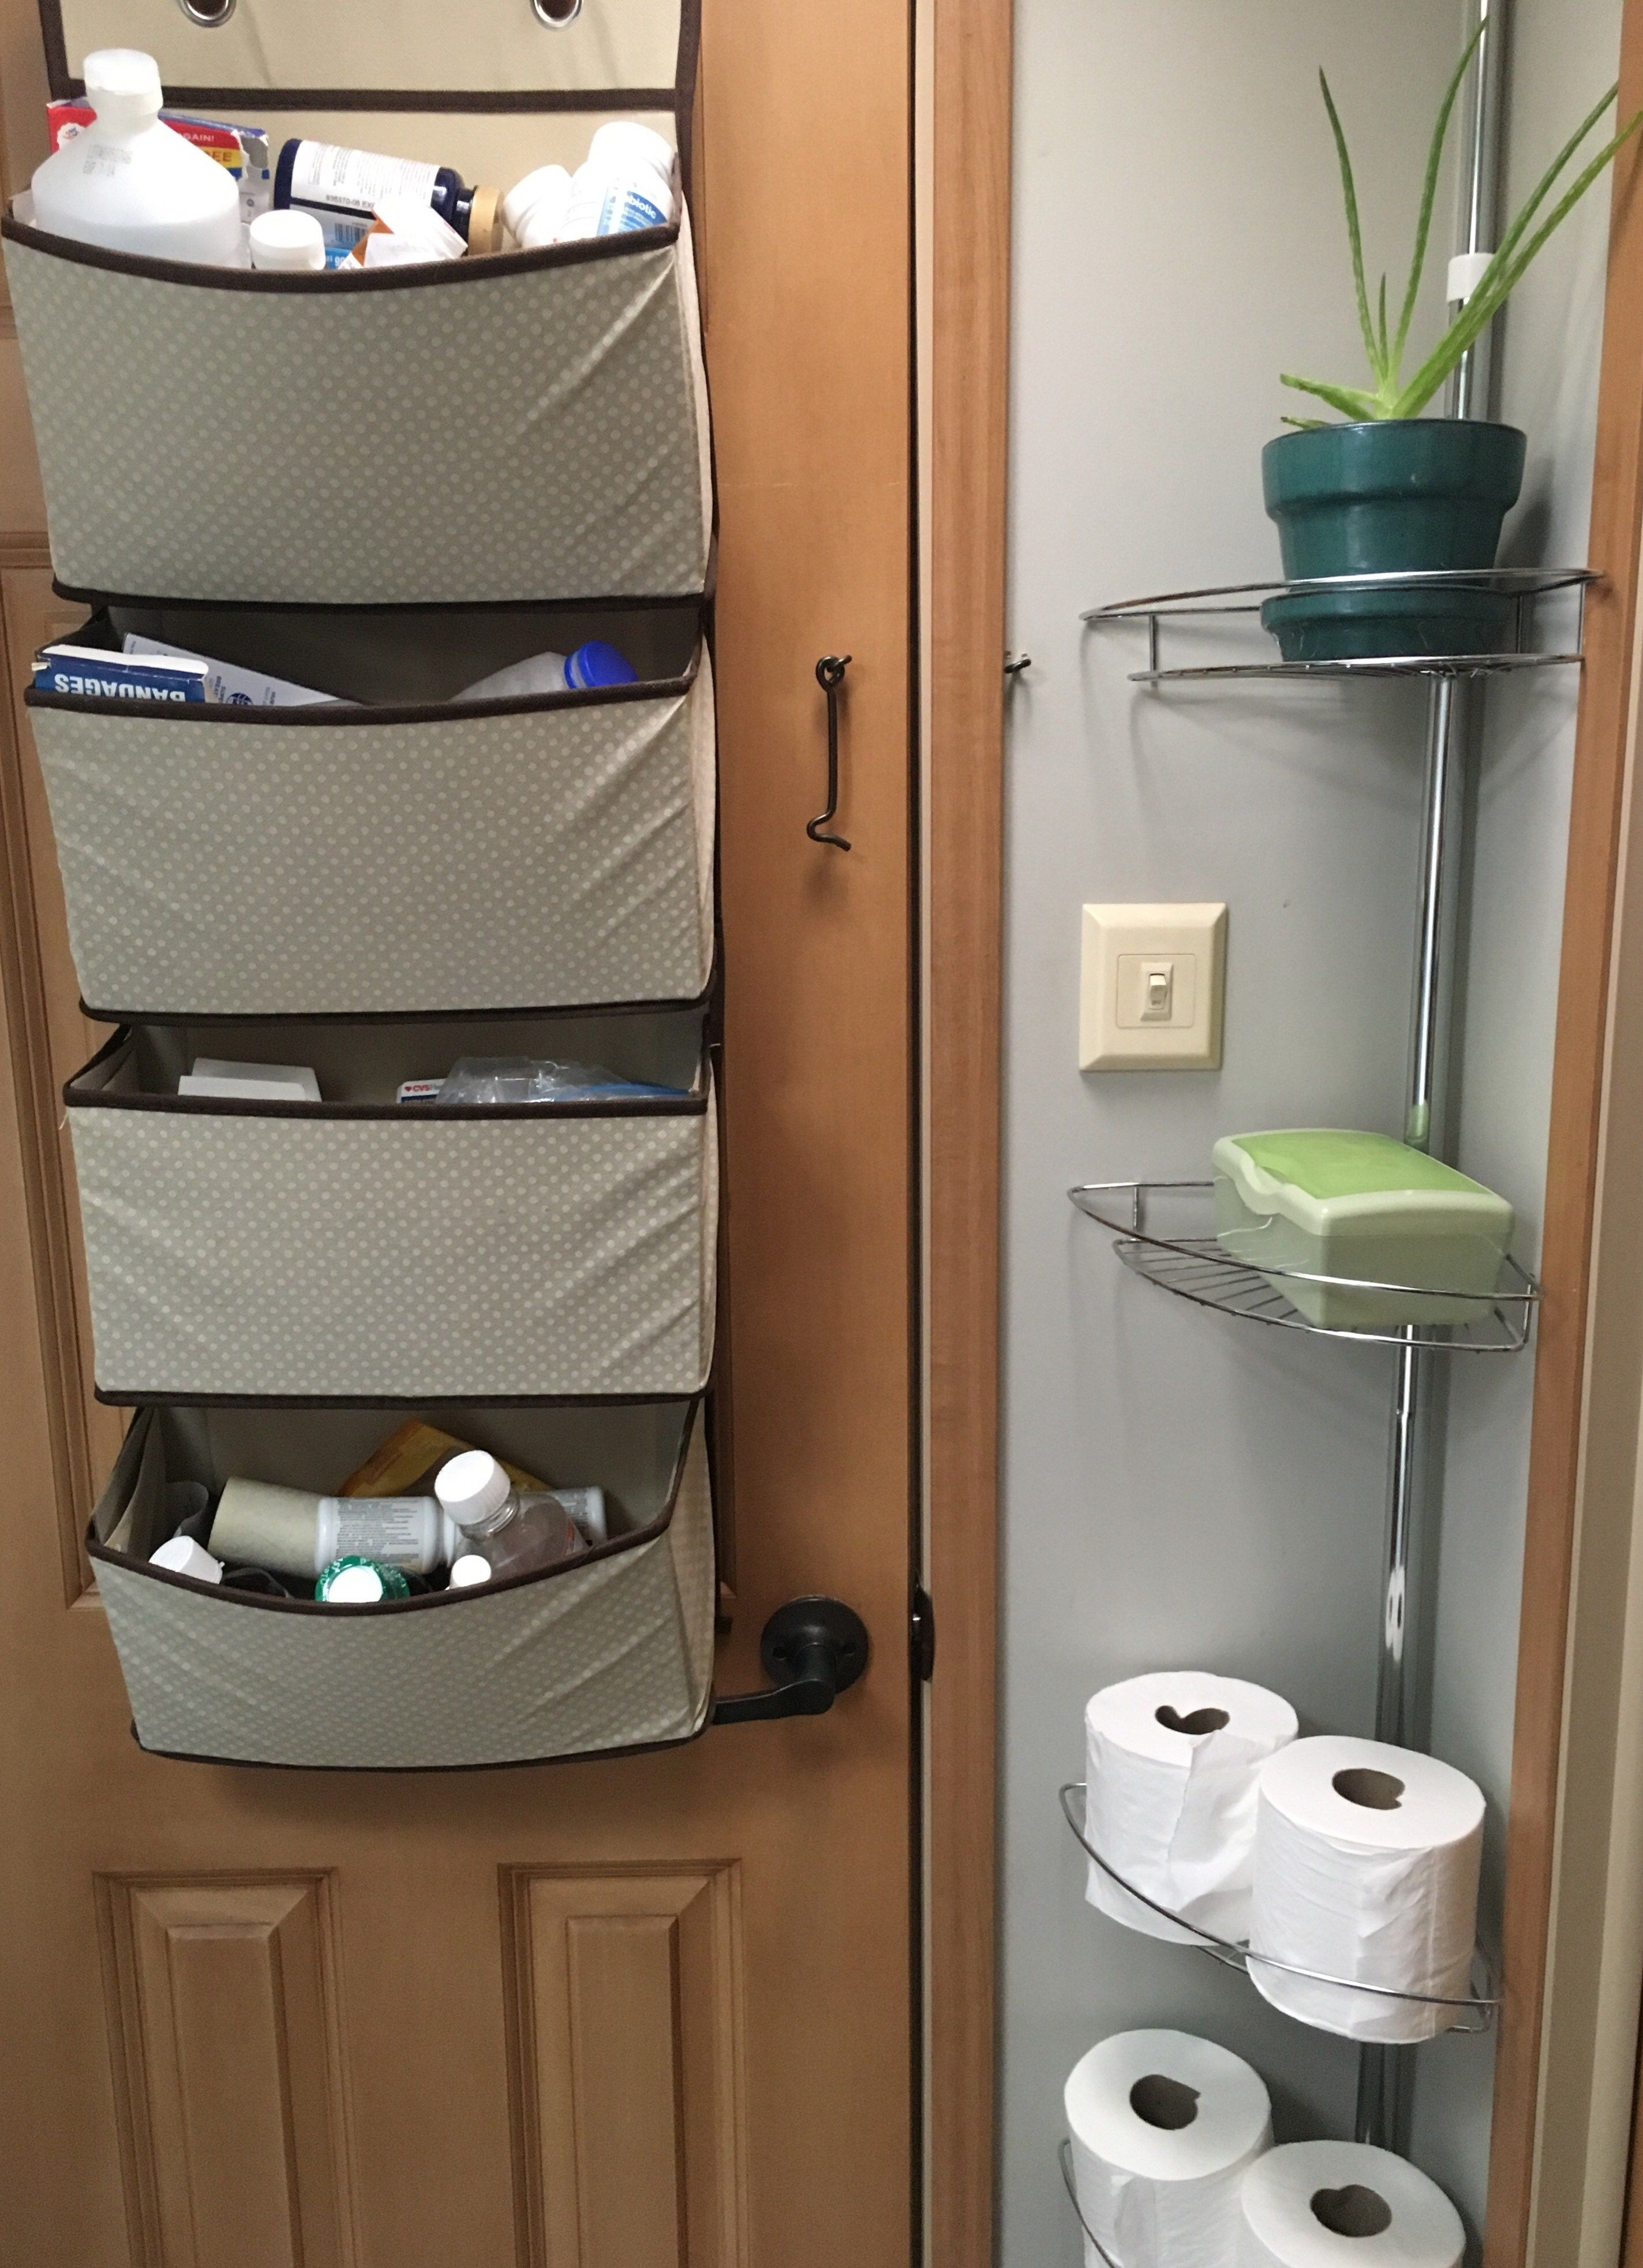 rv bathroom storage organization ideas and accessories on clever small apartment living organization bathroom ideas unique methods for an organized bathroom id=67732